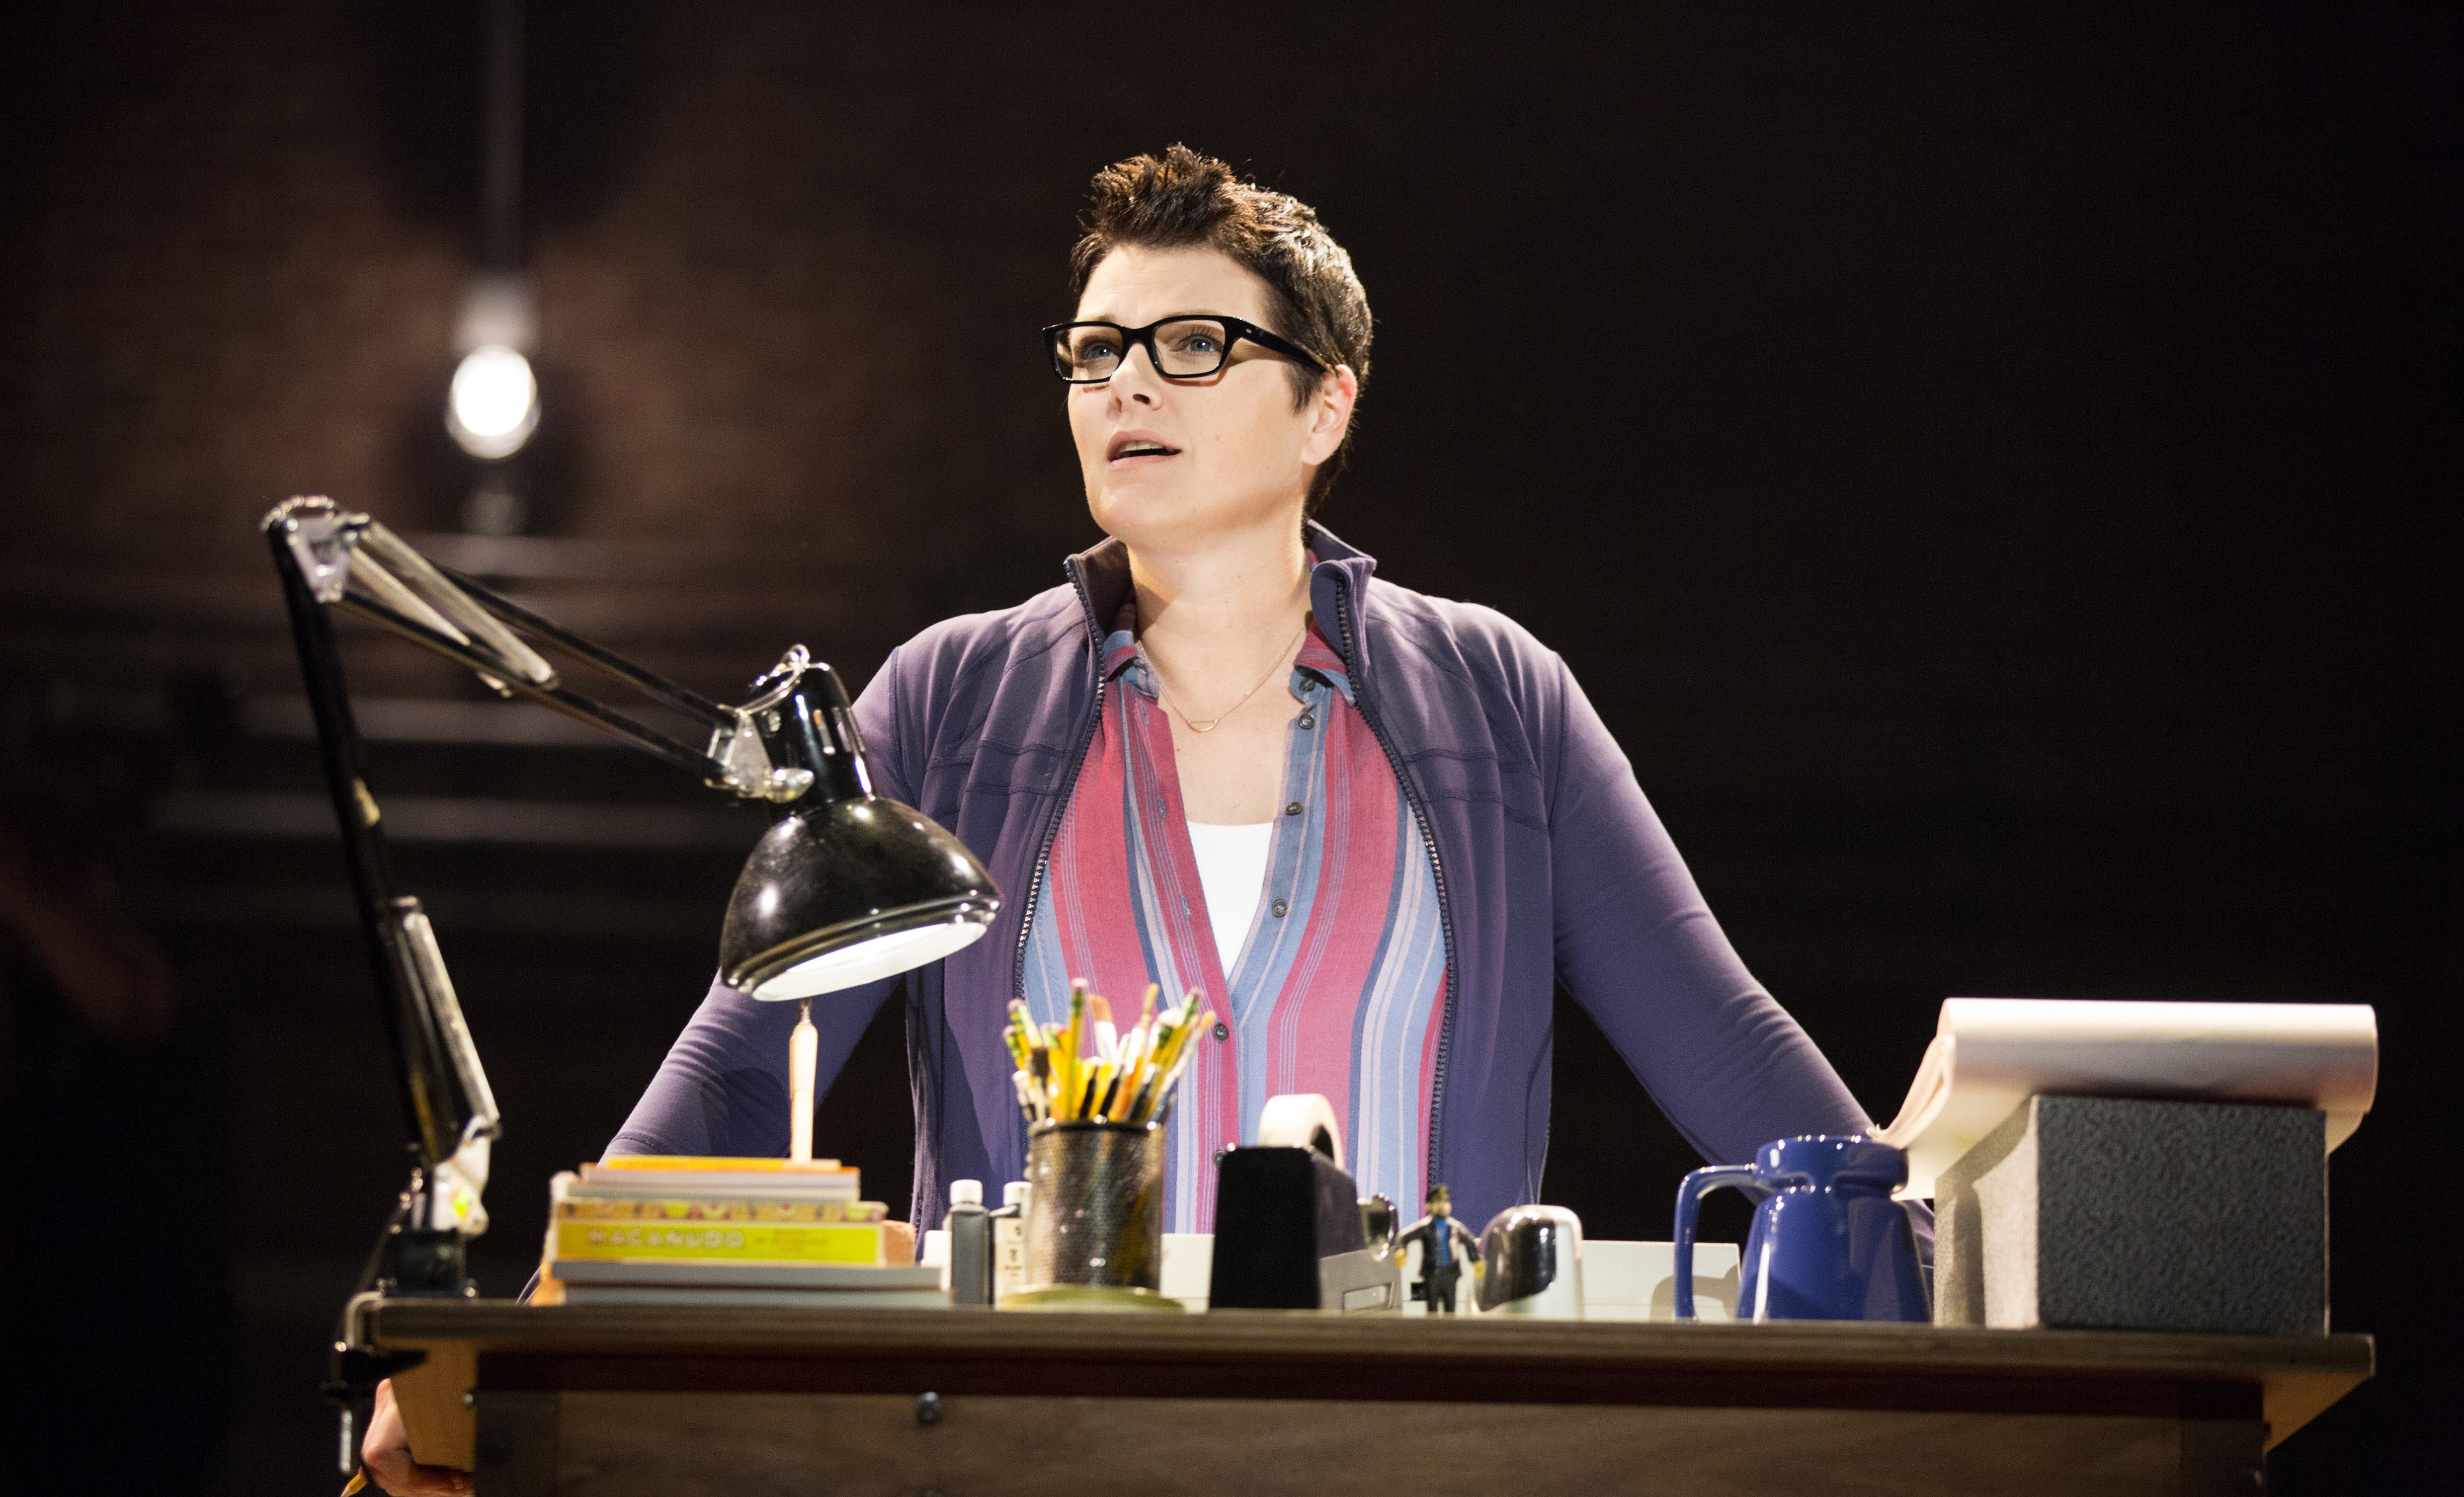 FUN HOME invites audiences on a lovely, unique journey through memory